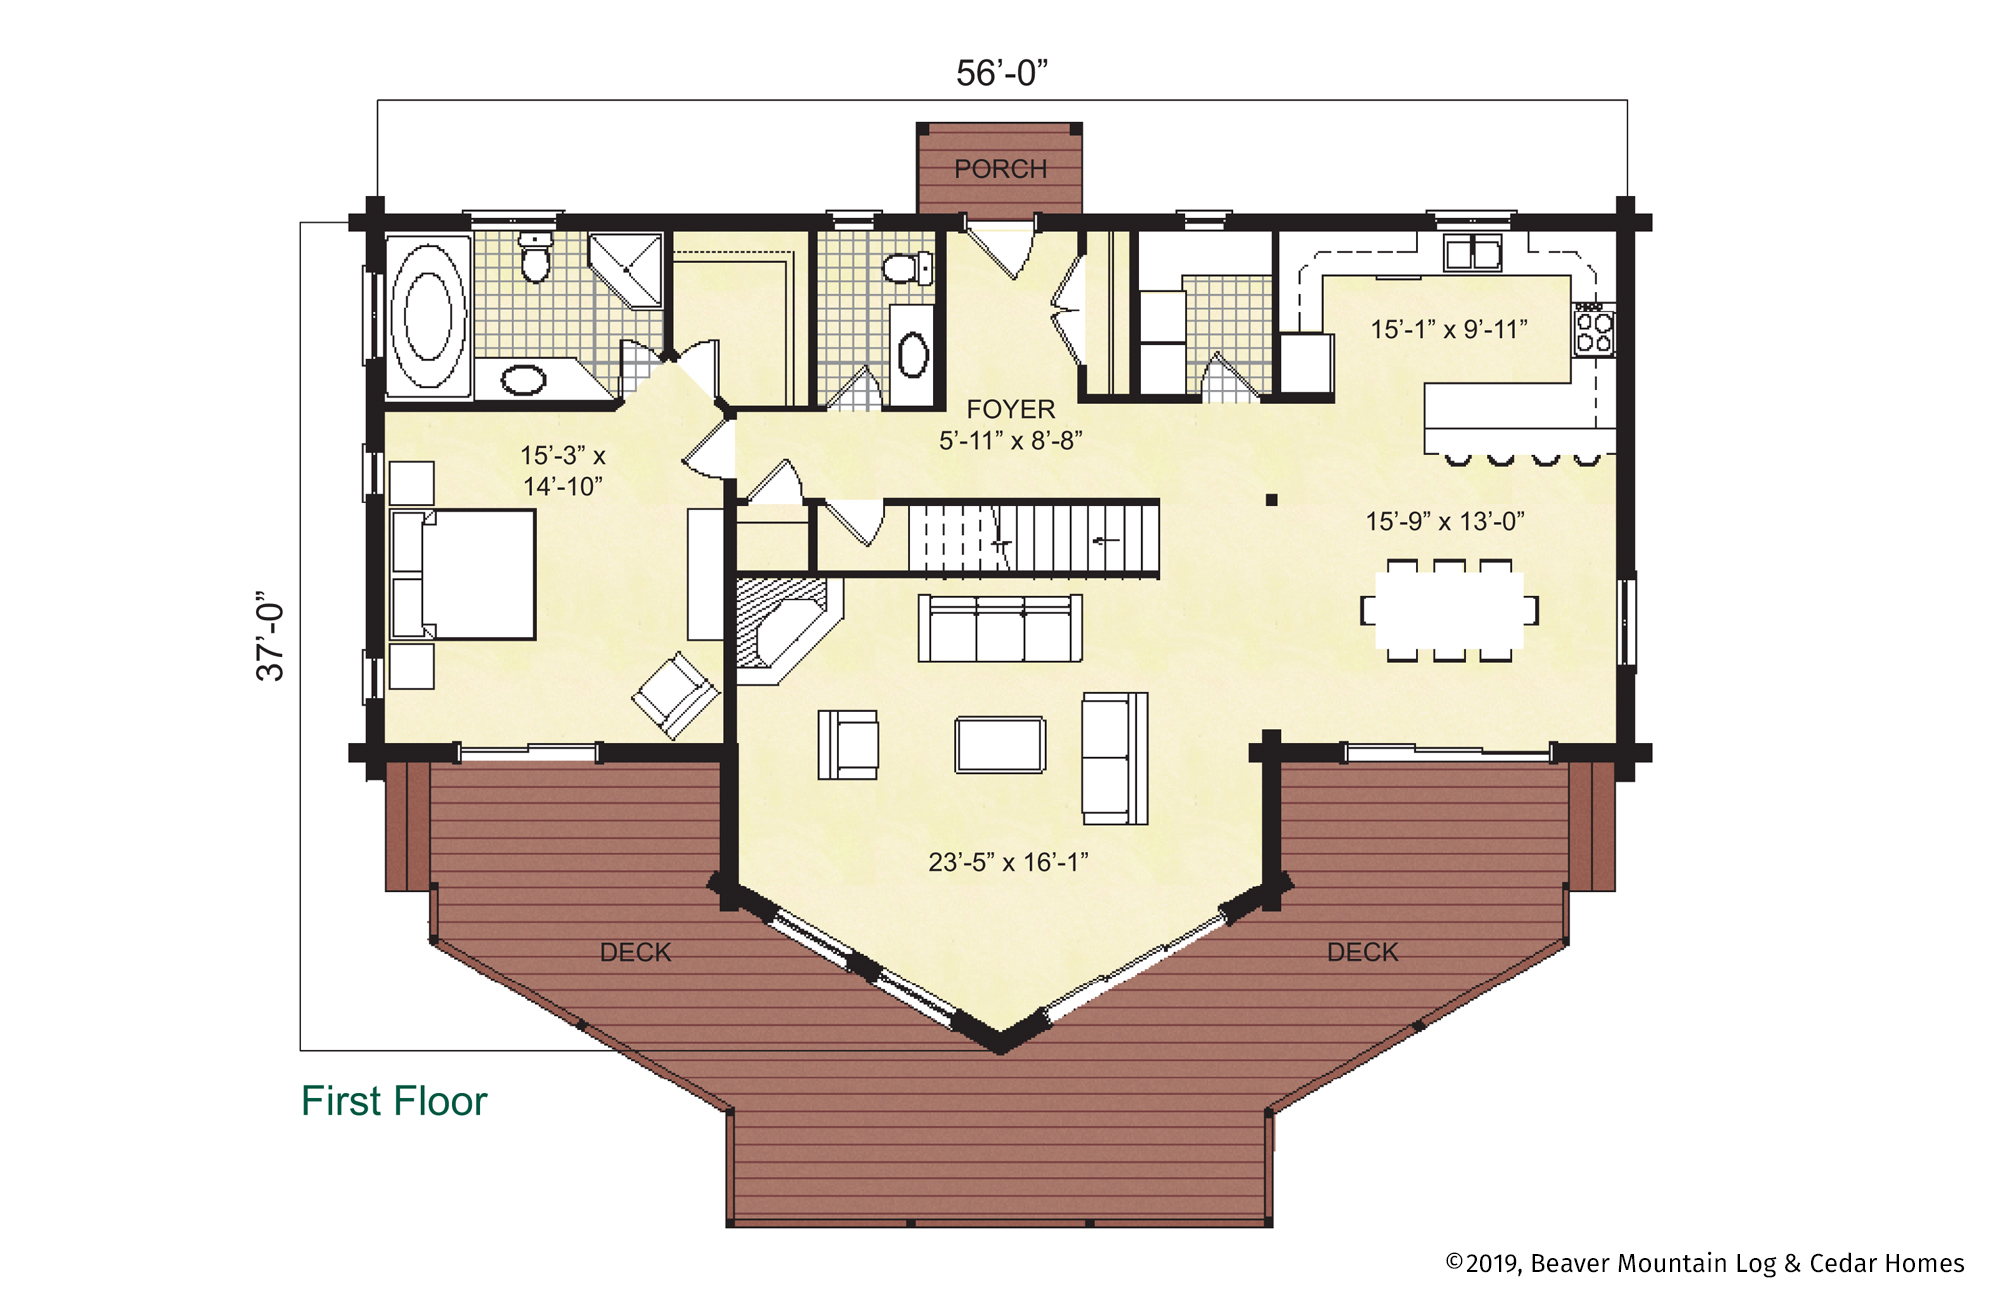 Beaver Mountain Log Homes Ouaquaga Main Level Floor Plan